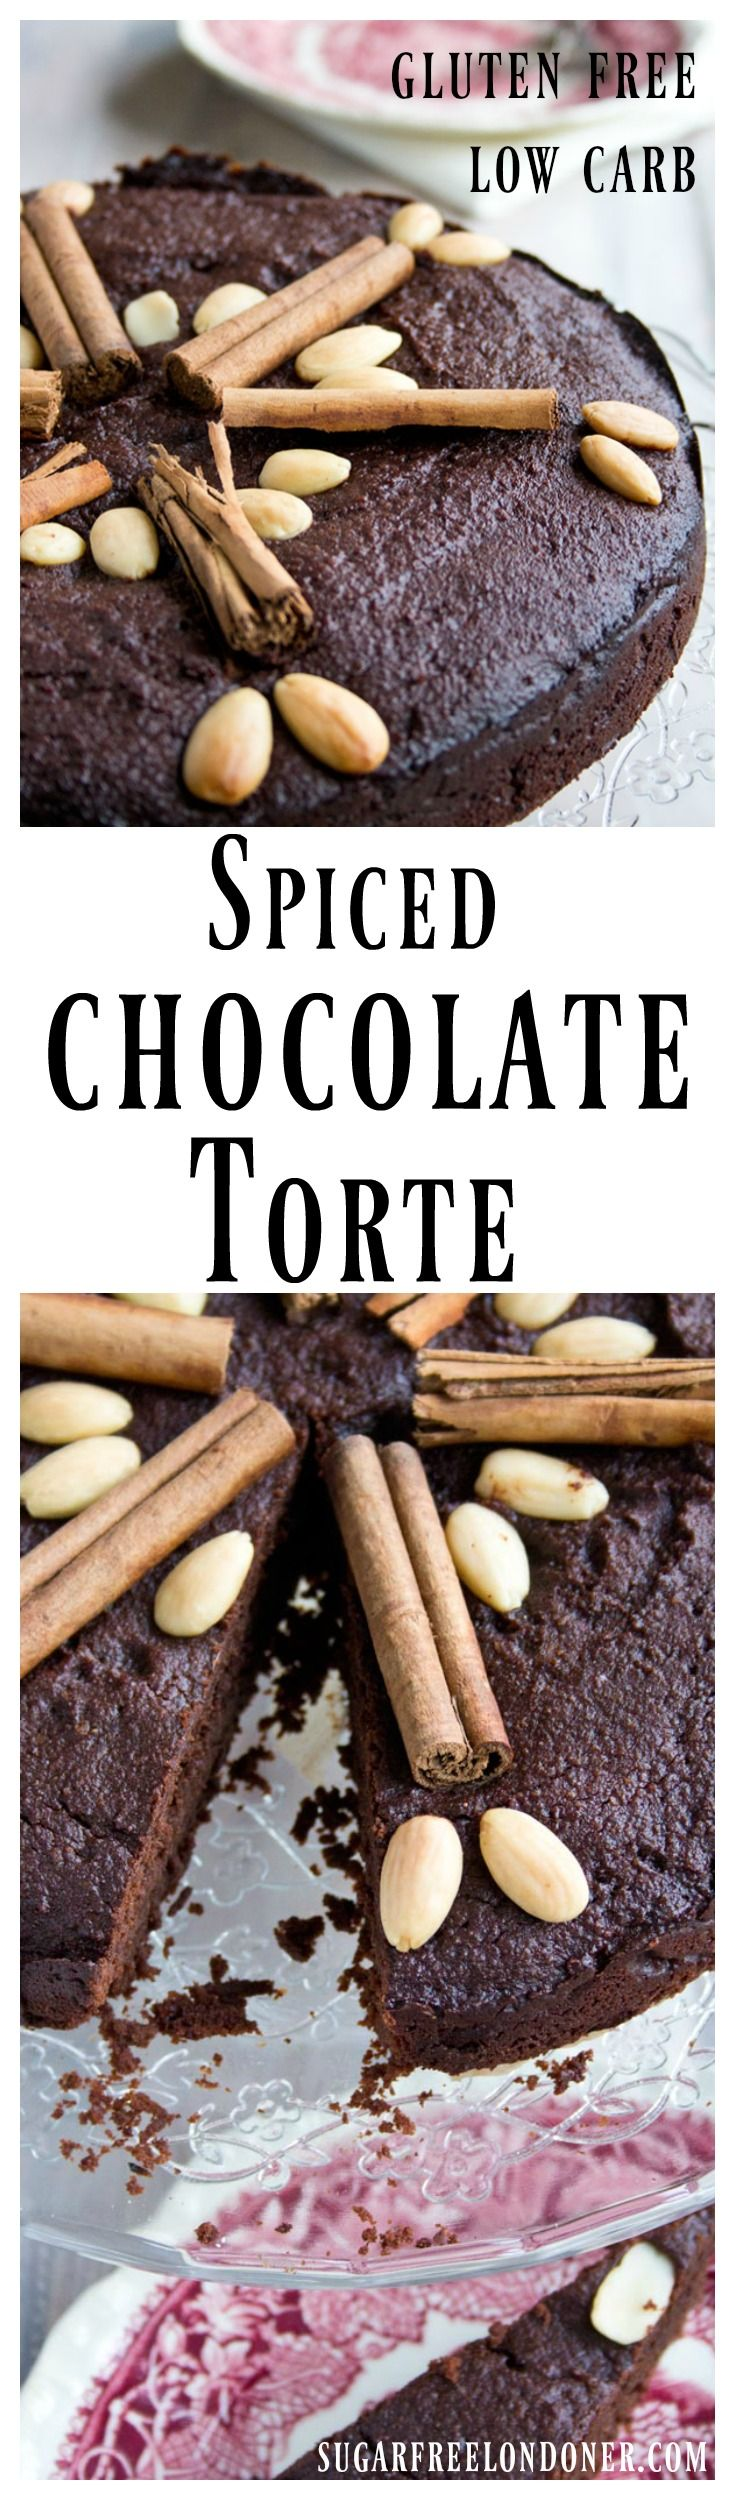 A festive treat without the sugar rush: This gluten free and moist spiced chocolate torte is sweetened with dates and erythritol. The perfect crowning glory for a special meal with notes of cinnamon, cardamom and cloves. Low carb and paleo